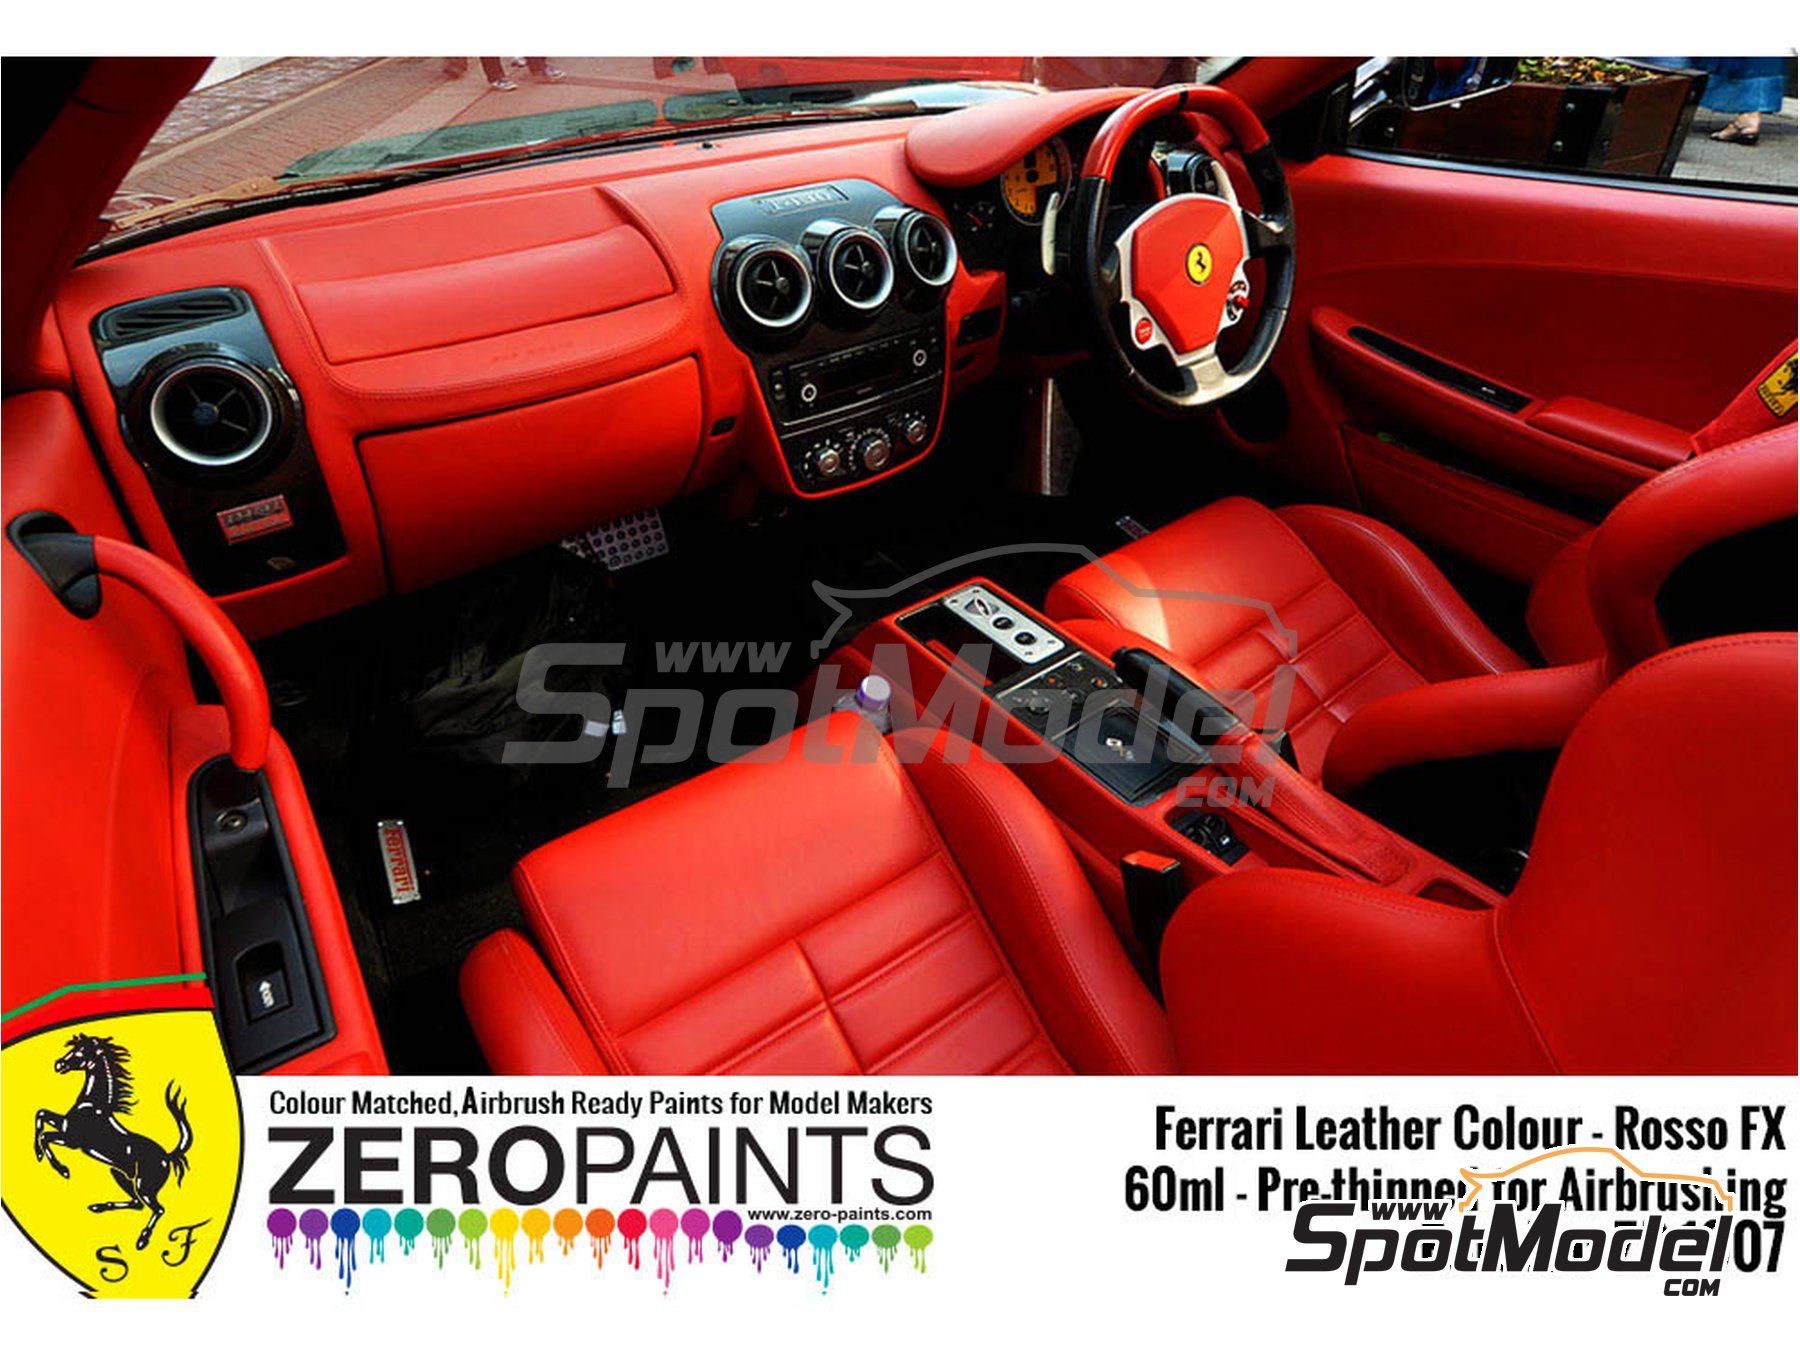 Image 2: Ferrari leather colour Rosso FX | Paint manufactured by Zero Paints (ref. ZP-1007-7754-02)